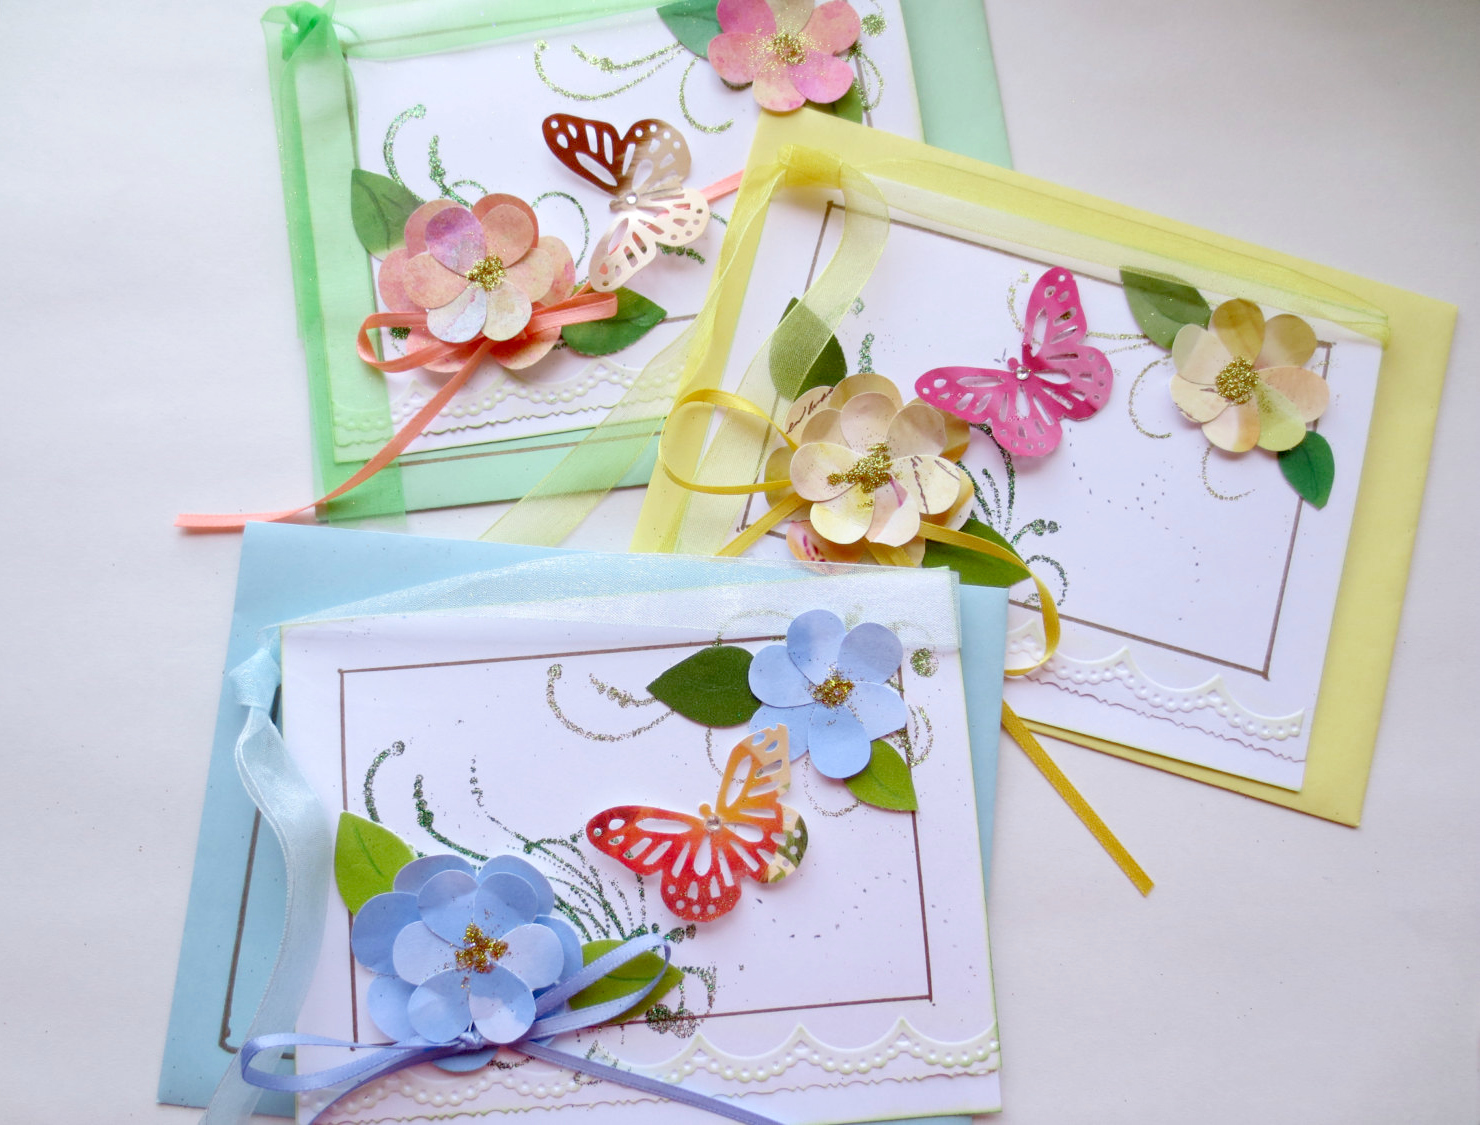 National send a card to a friend day letter writing inspirations say it in 3d image courtesy etsy seller anasdesignshop m4hsunfo